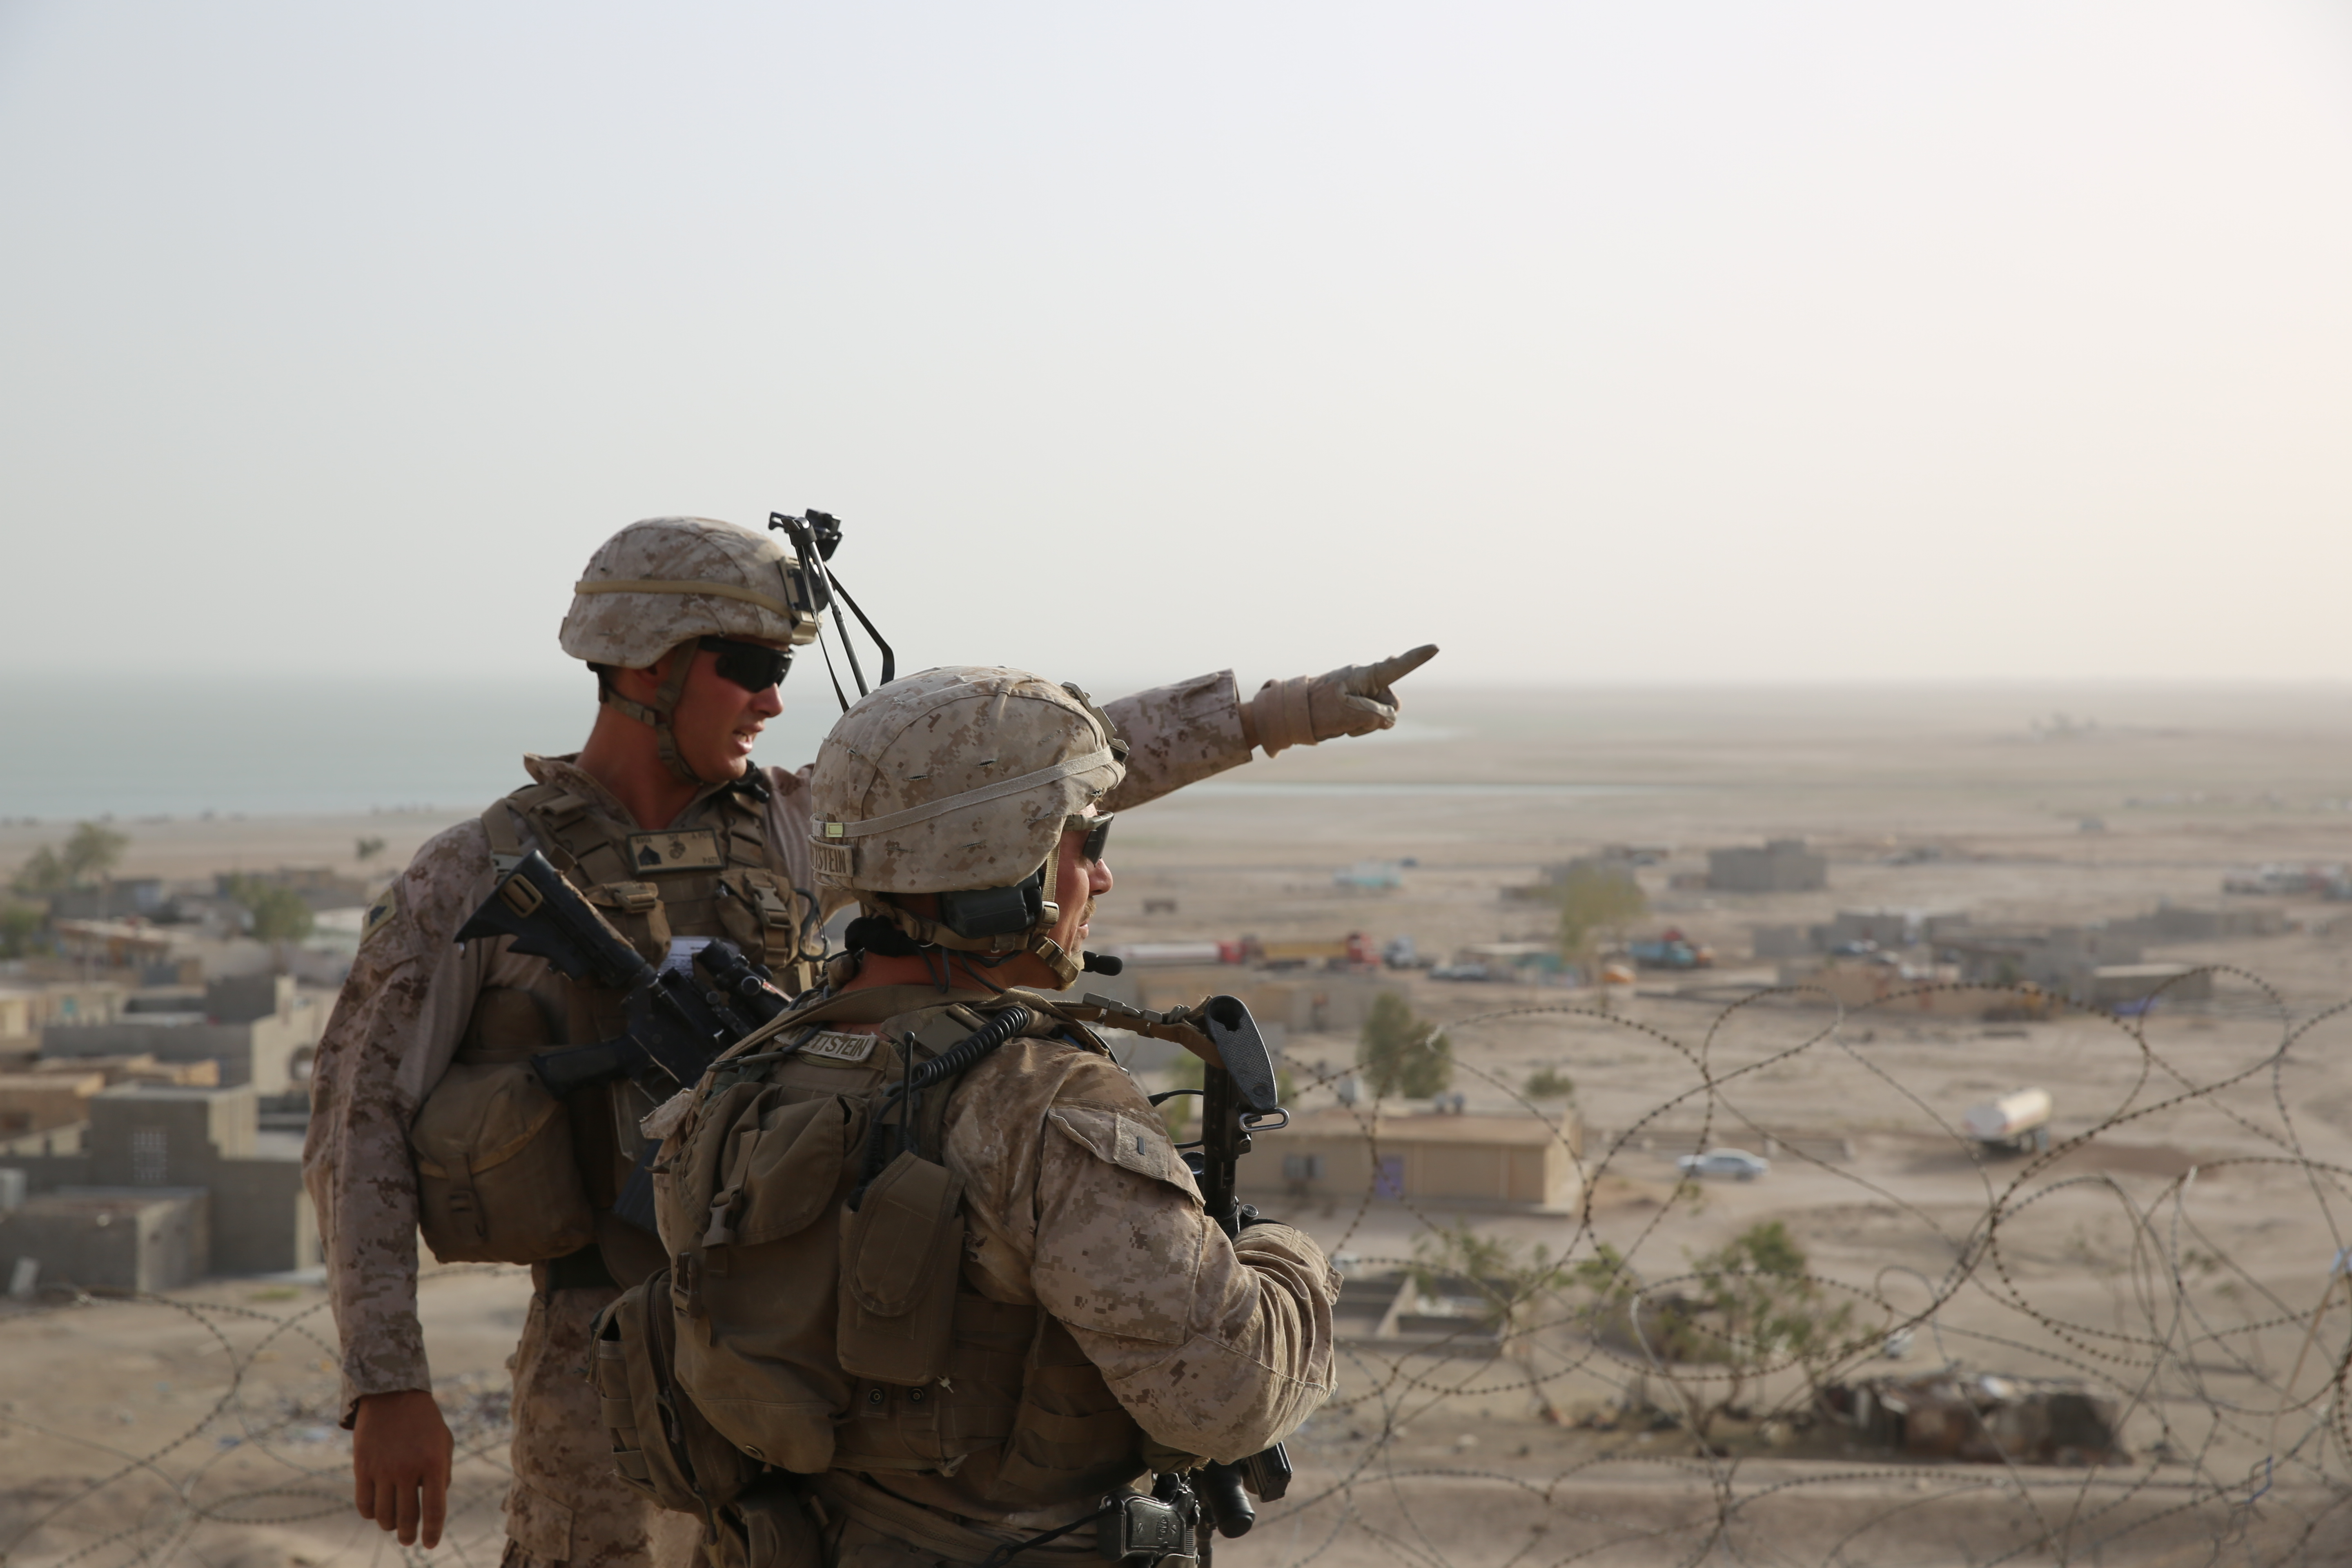 No need for more U.S. troops in Iraq, Pentagon says